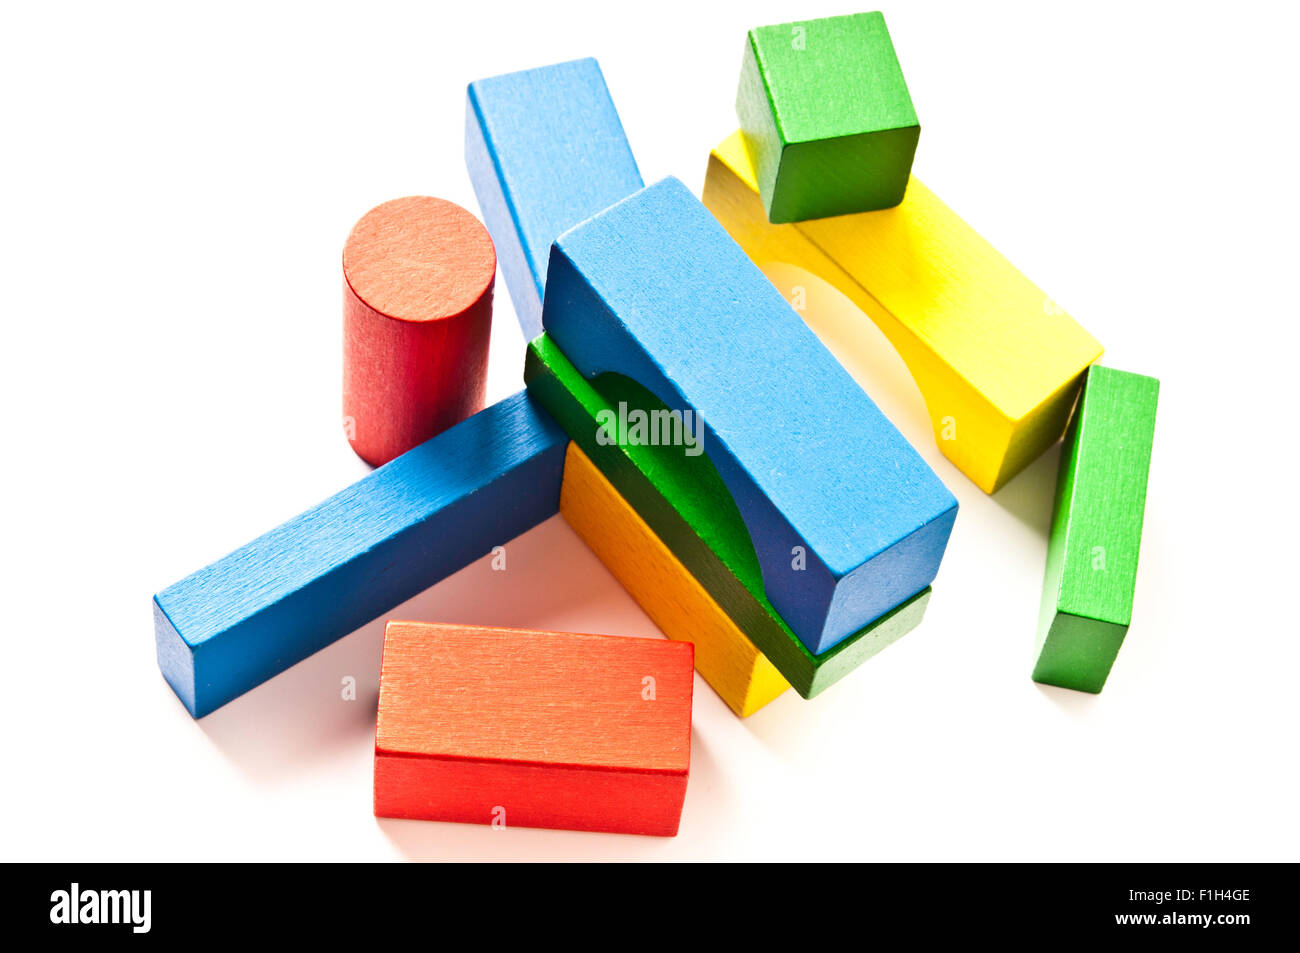 colourful wooden toy construction pieces Stock Photo